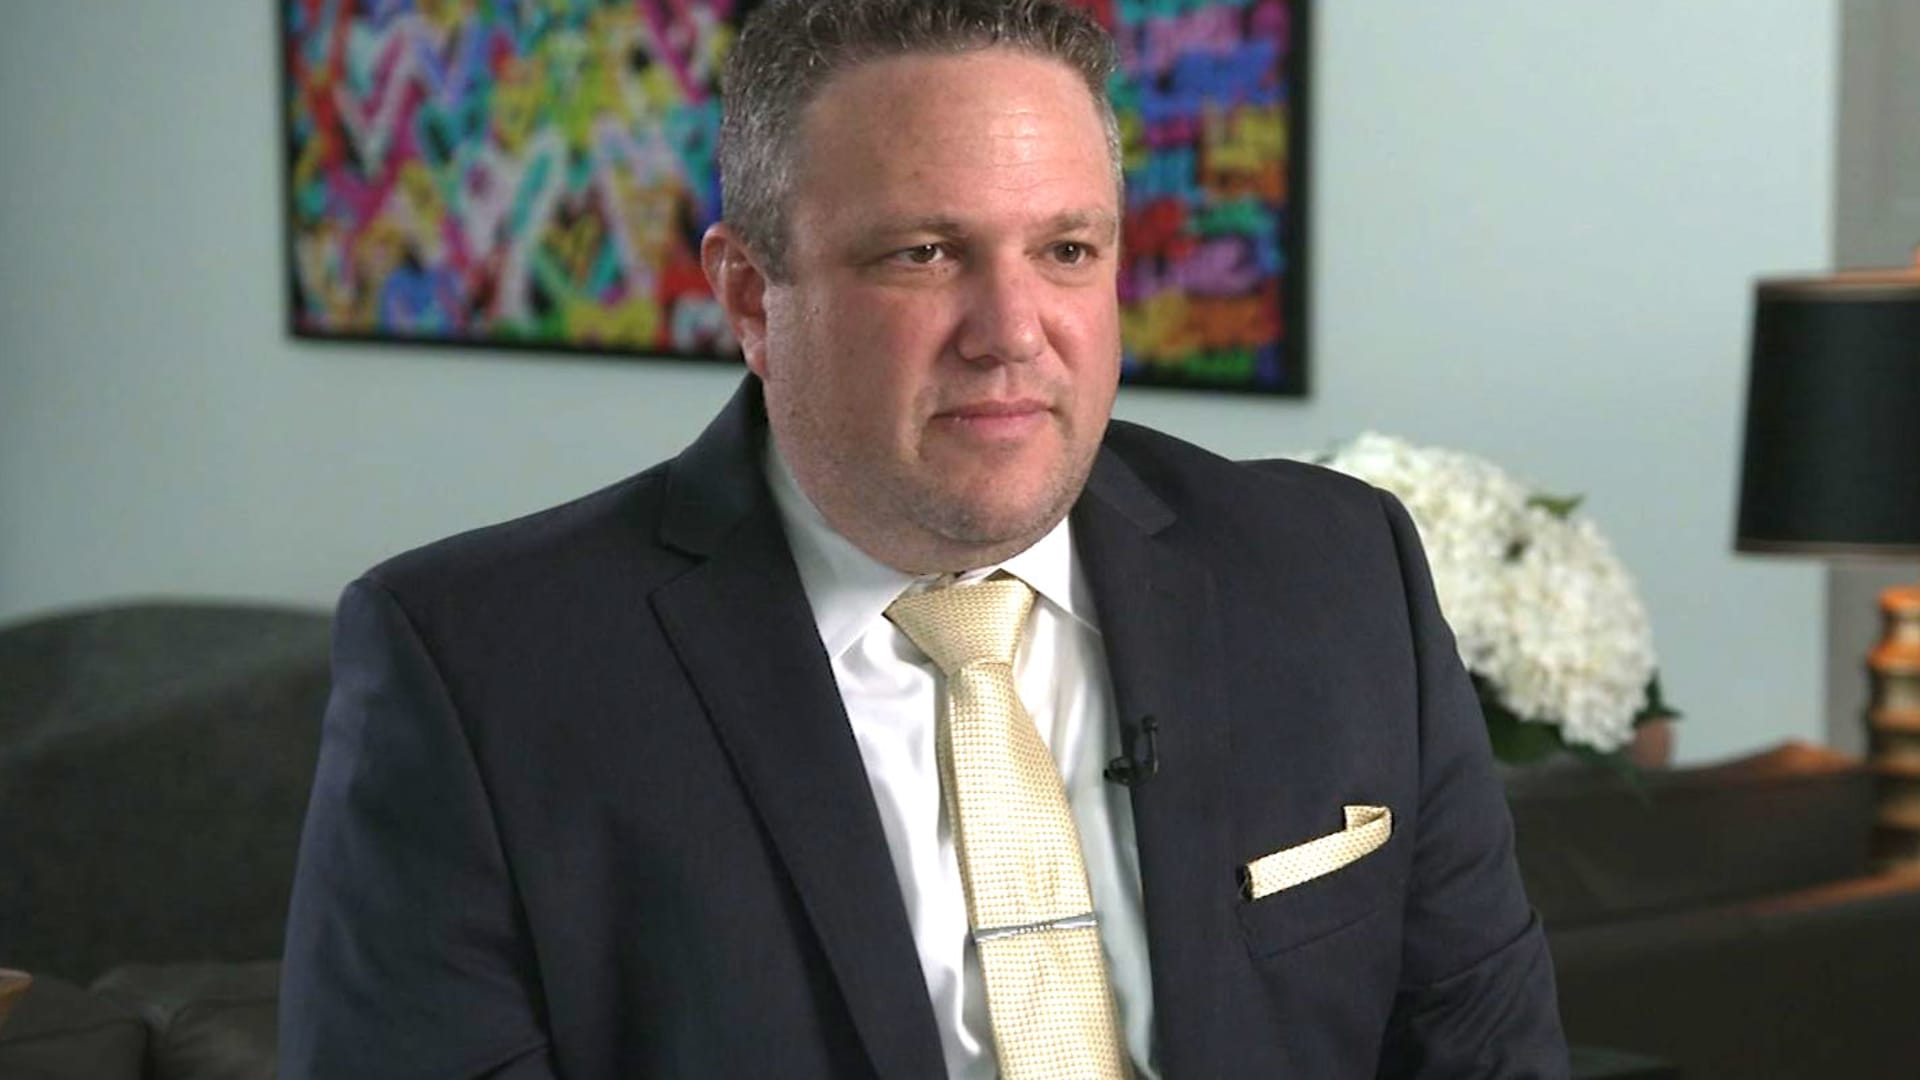 David Silver is an attorney specializing in cryptocurrency.